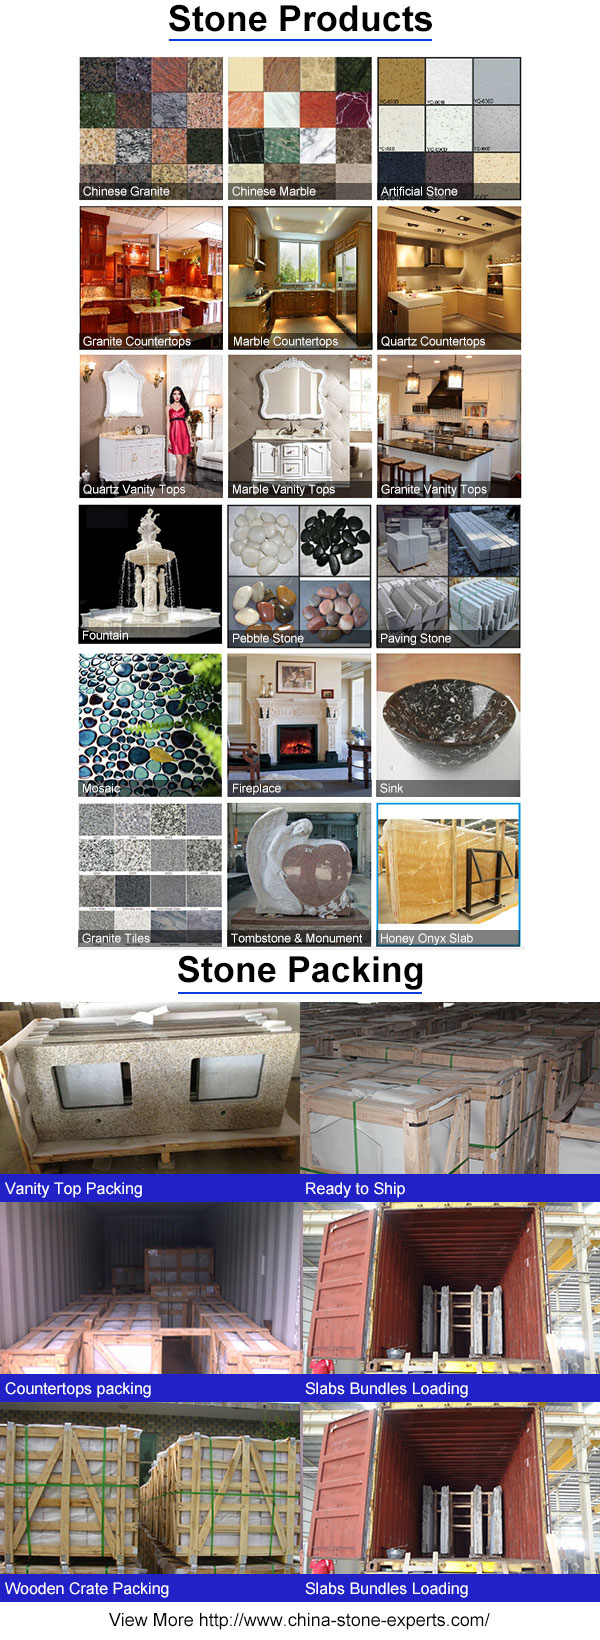 Stone Products+Packing.jpg